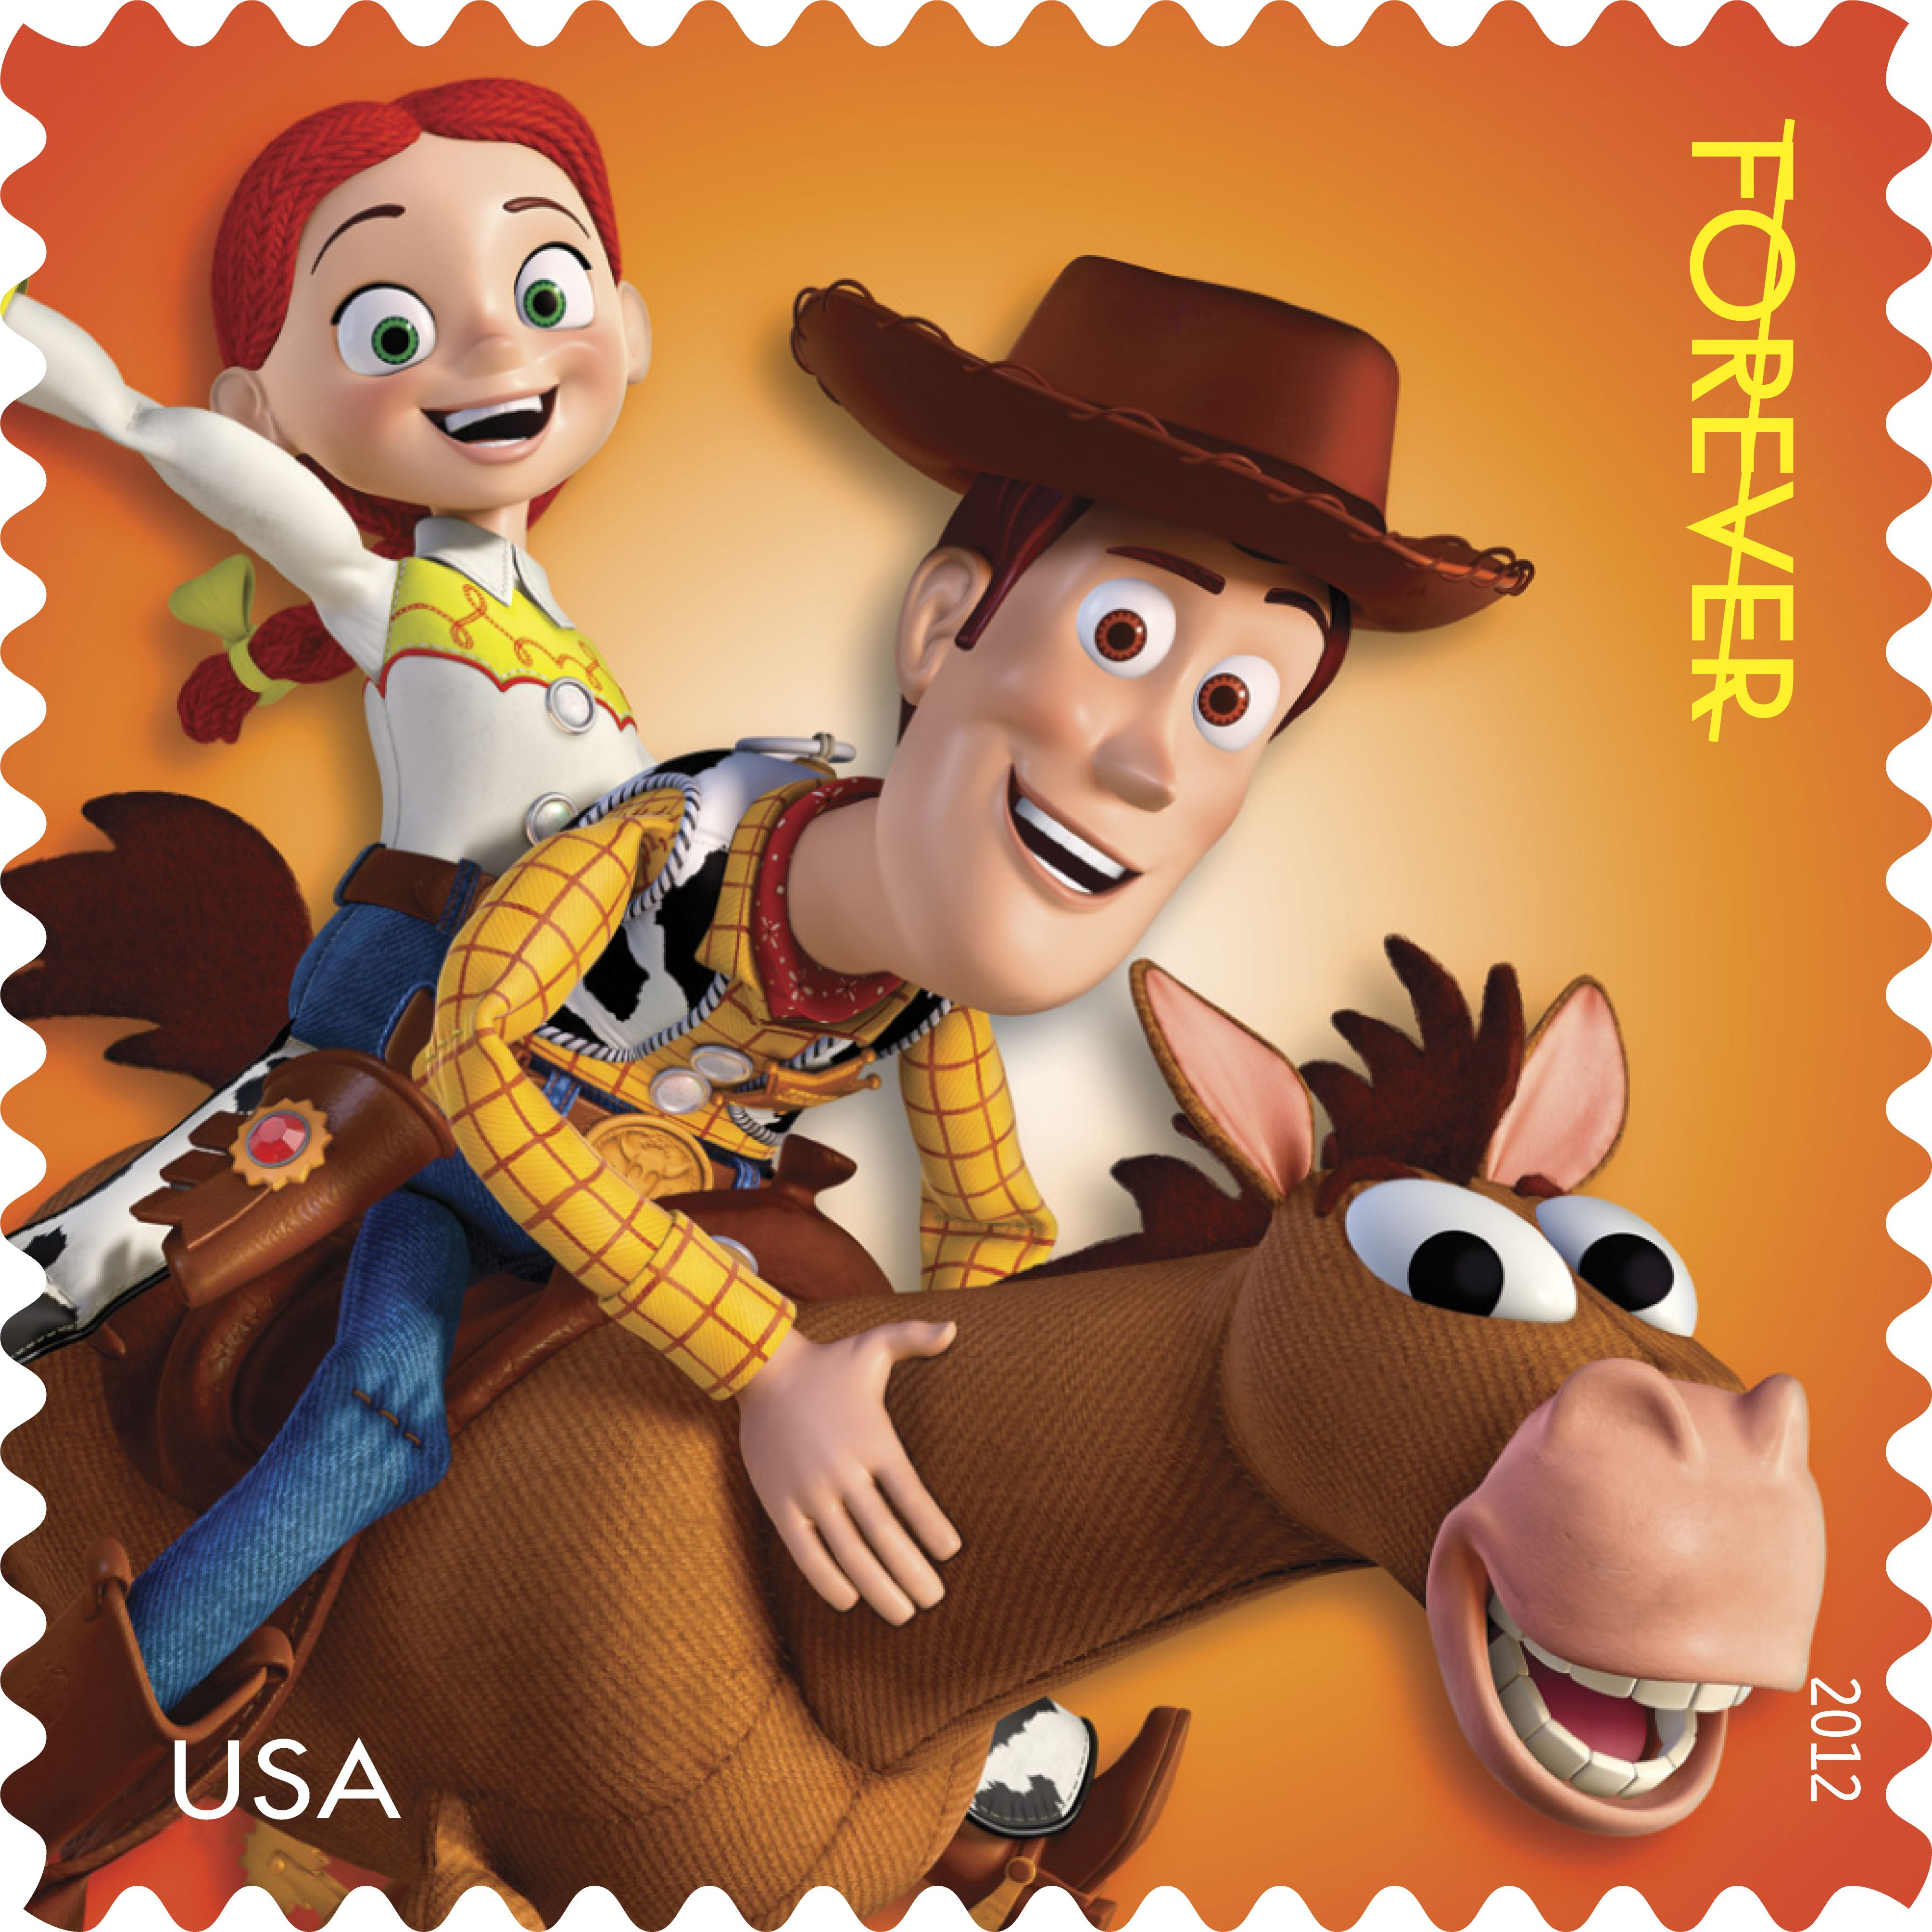 Toy Story on Pinterest   Toy Story, Toy Story 3 and Toy ...